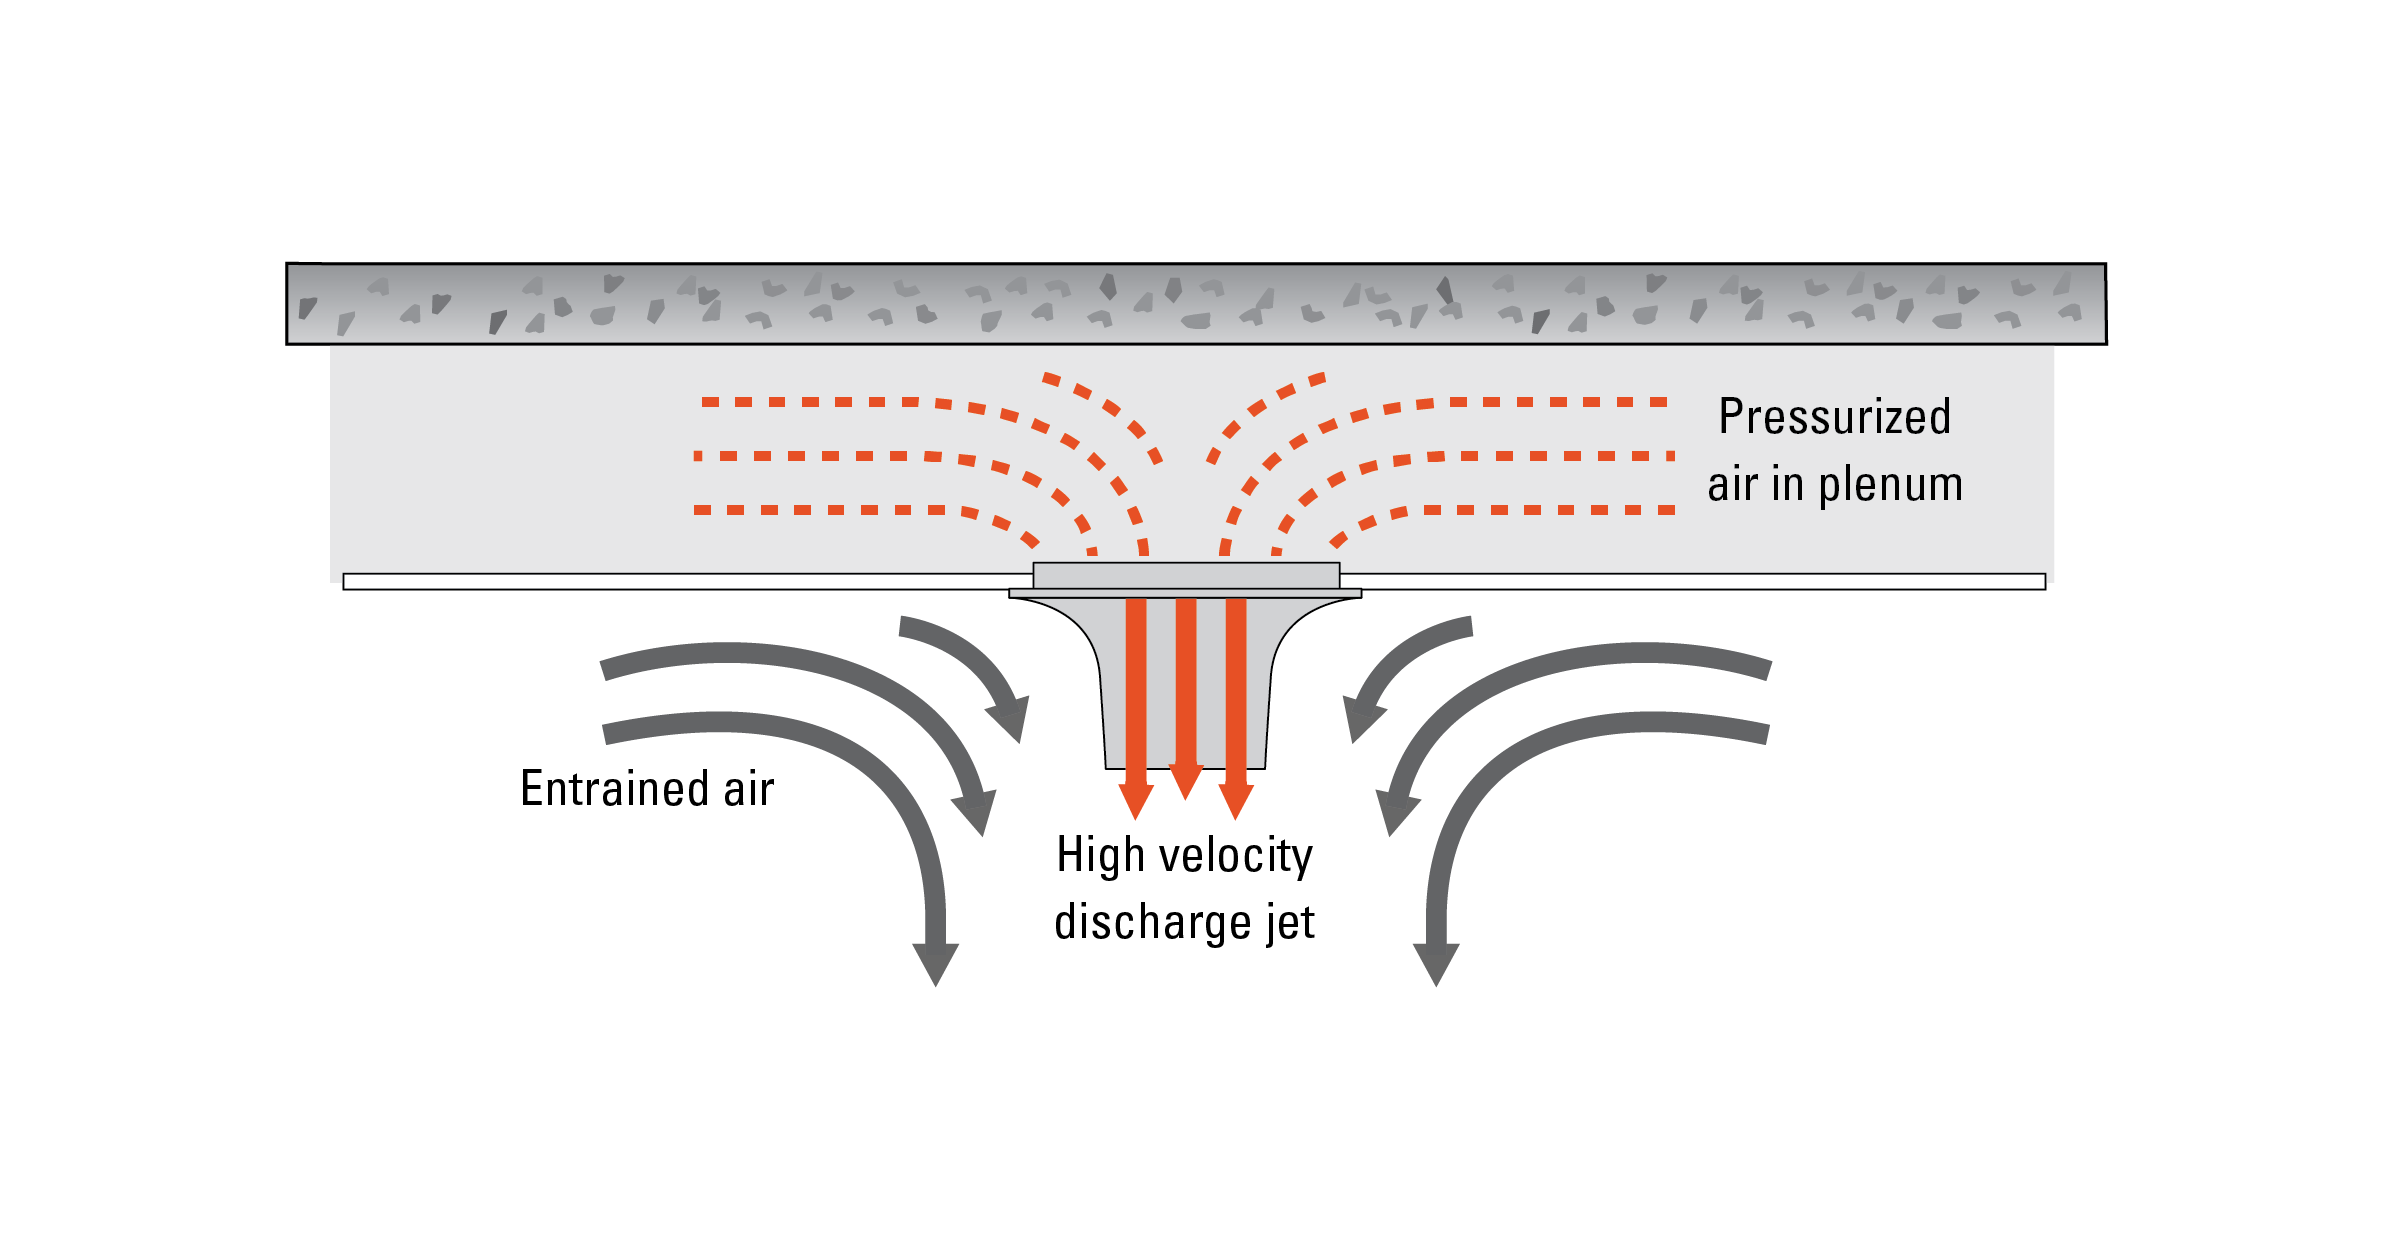 Process of injecting primary air under pressure through a nozzle